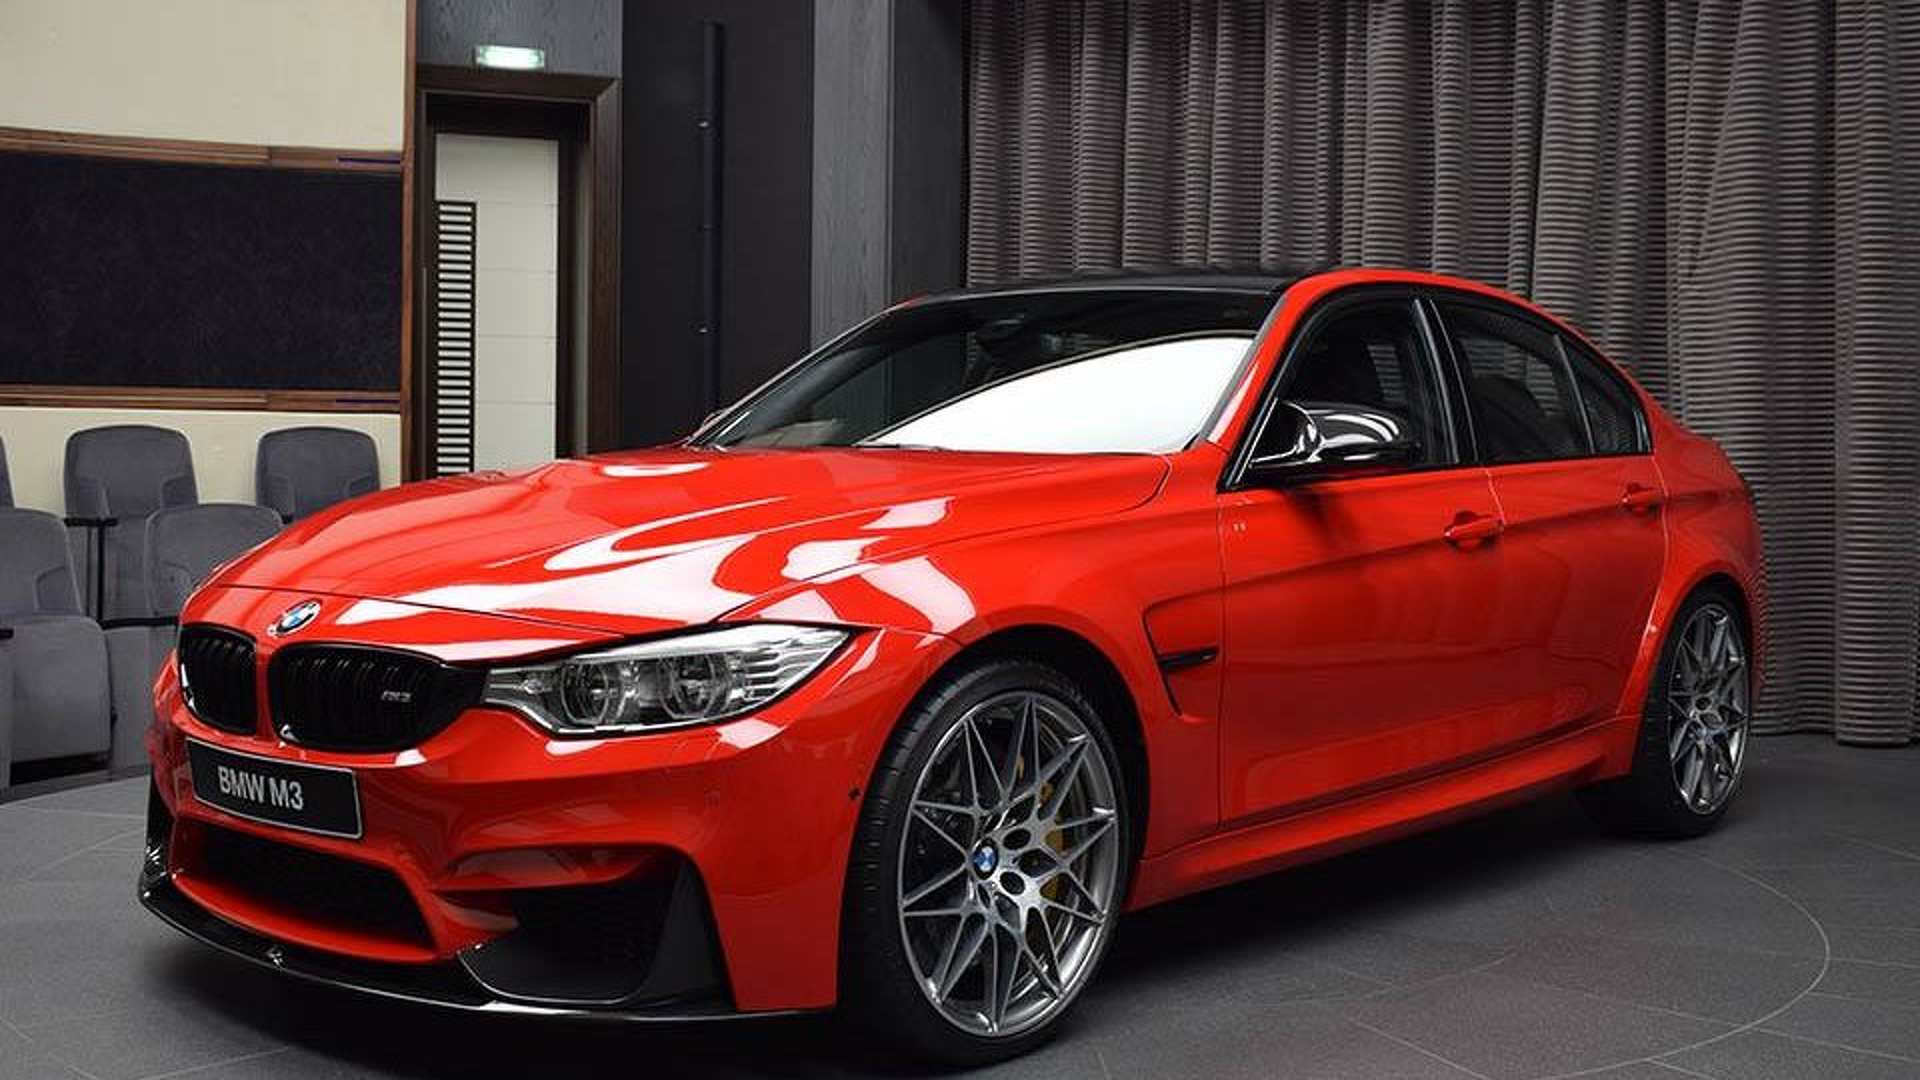 Bmw M3 With Competition Package And Ferrari Red Paint 1742367